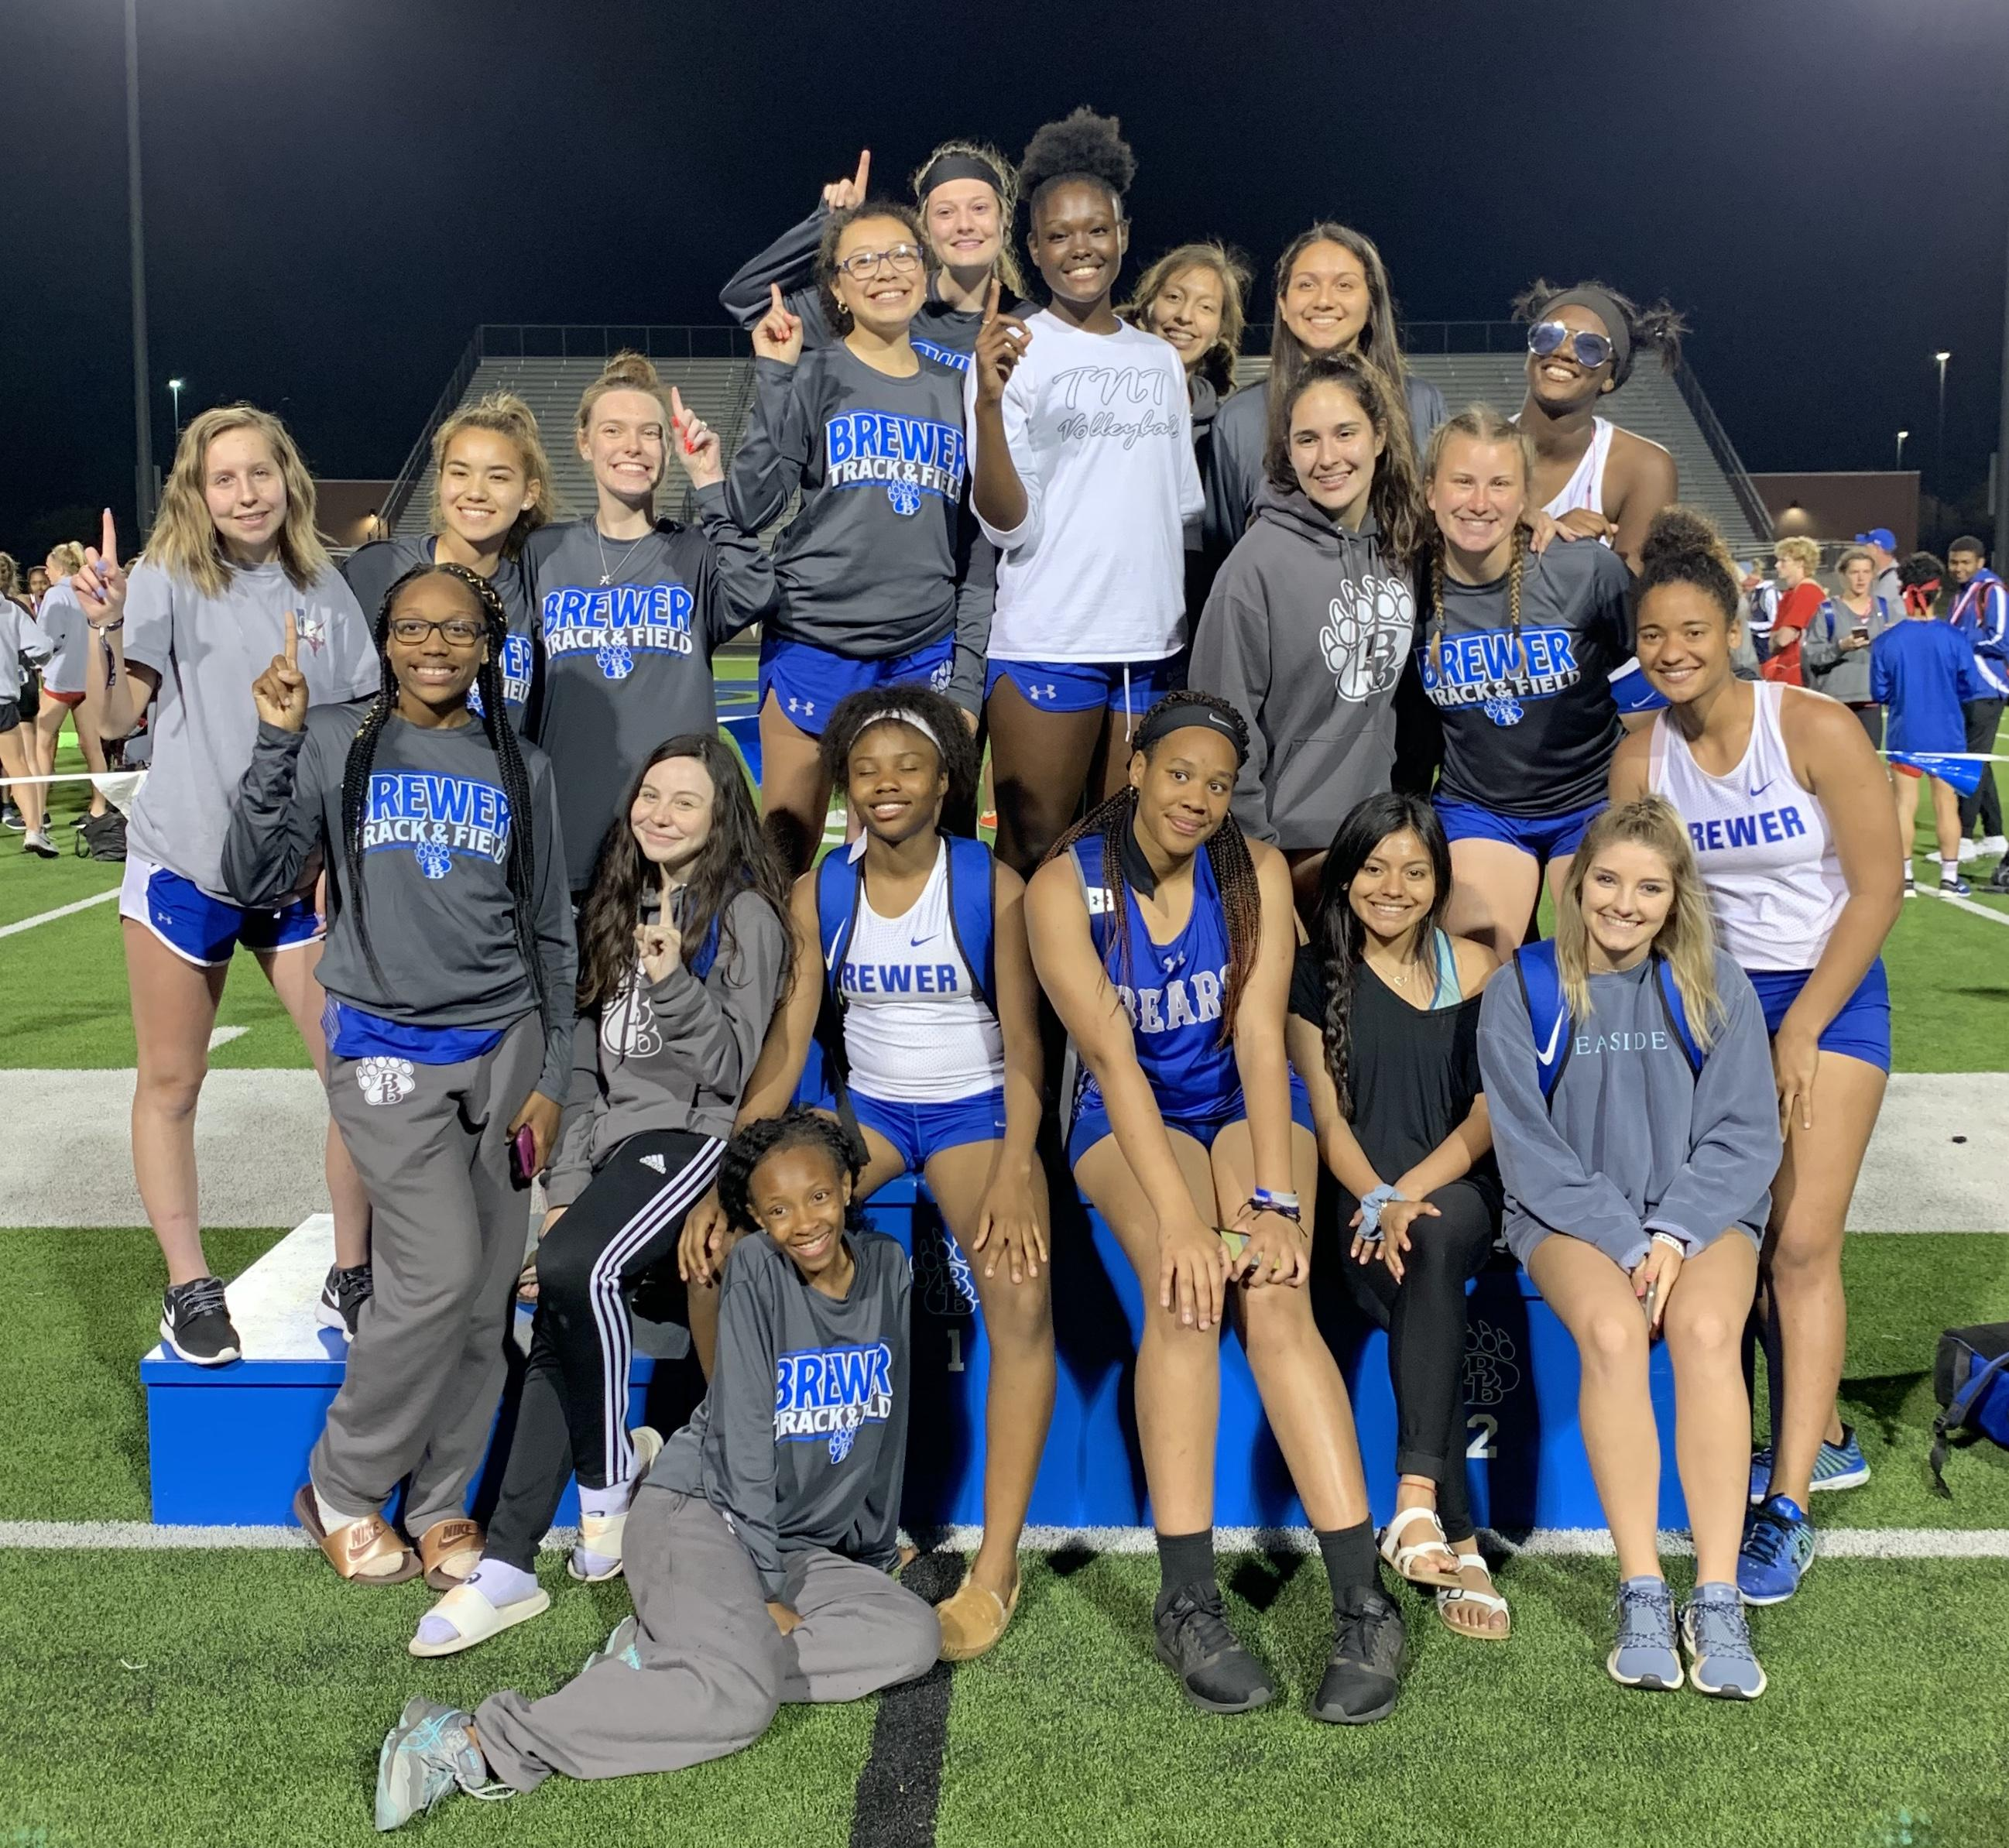 Several members of the Brewer High School track team placed at the District Meet, advancing to the Area Meet in Keller on April 17 and 18.